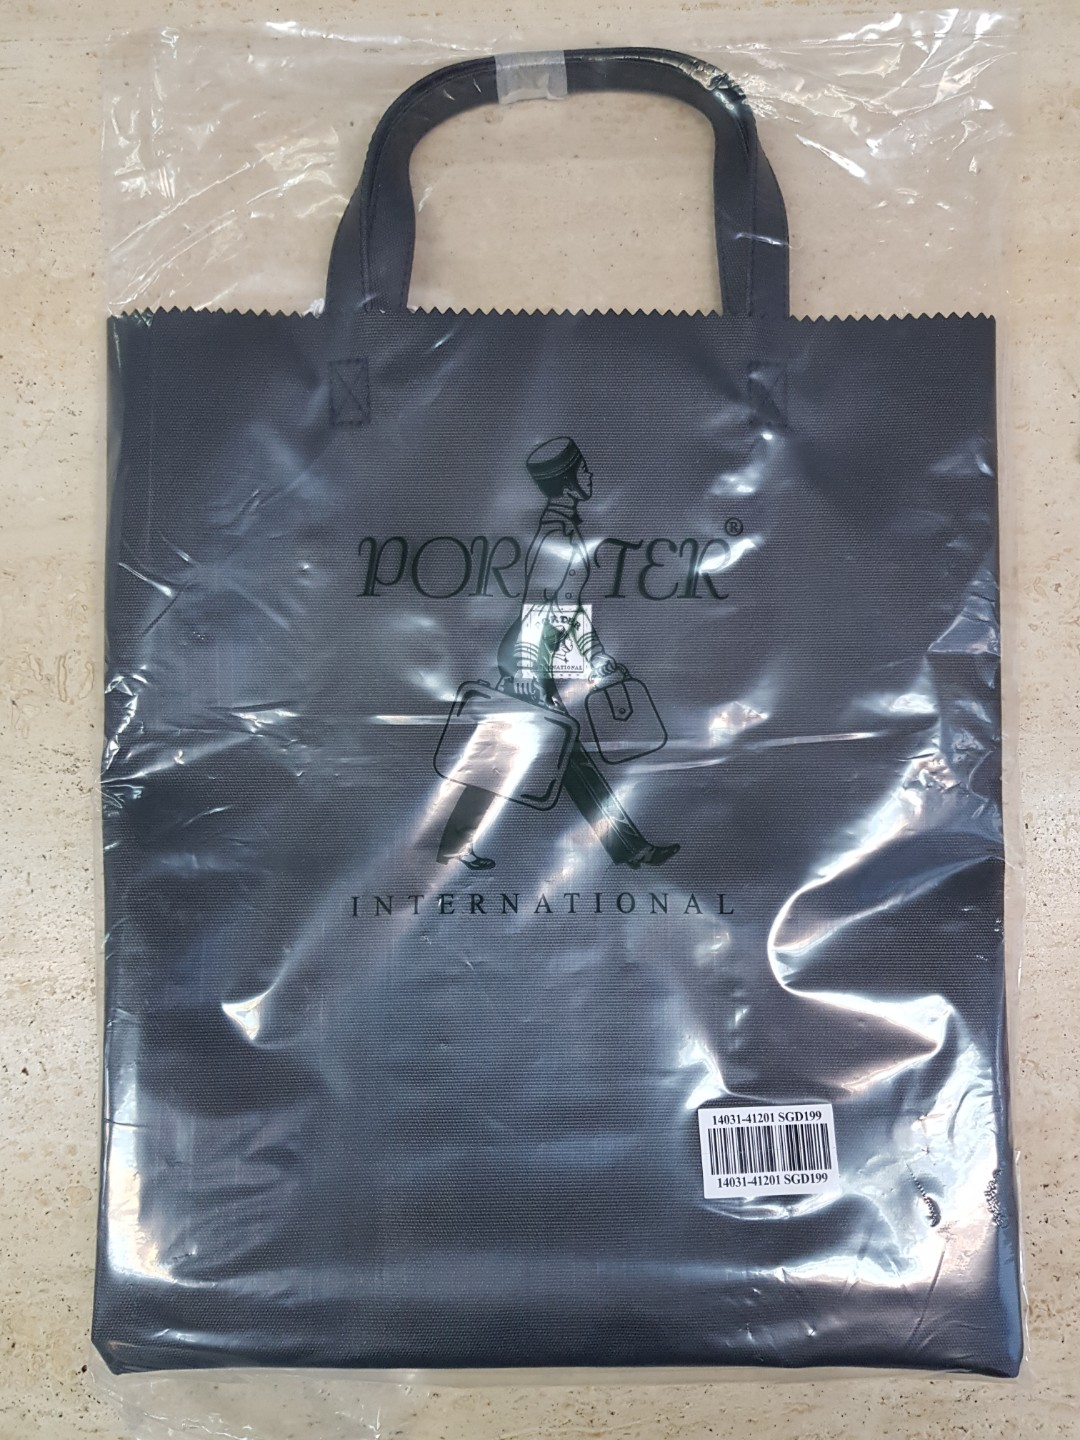 b8a80df18 Porter international tote bag, Luxury, Bags & Wallets, Others on ...